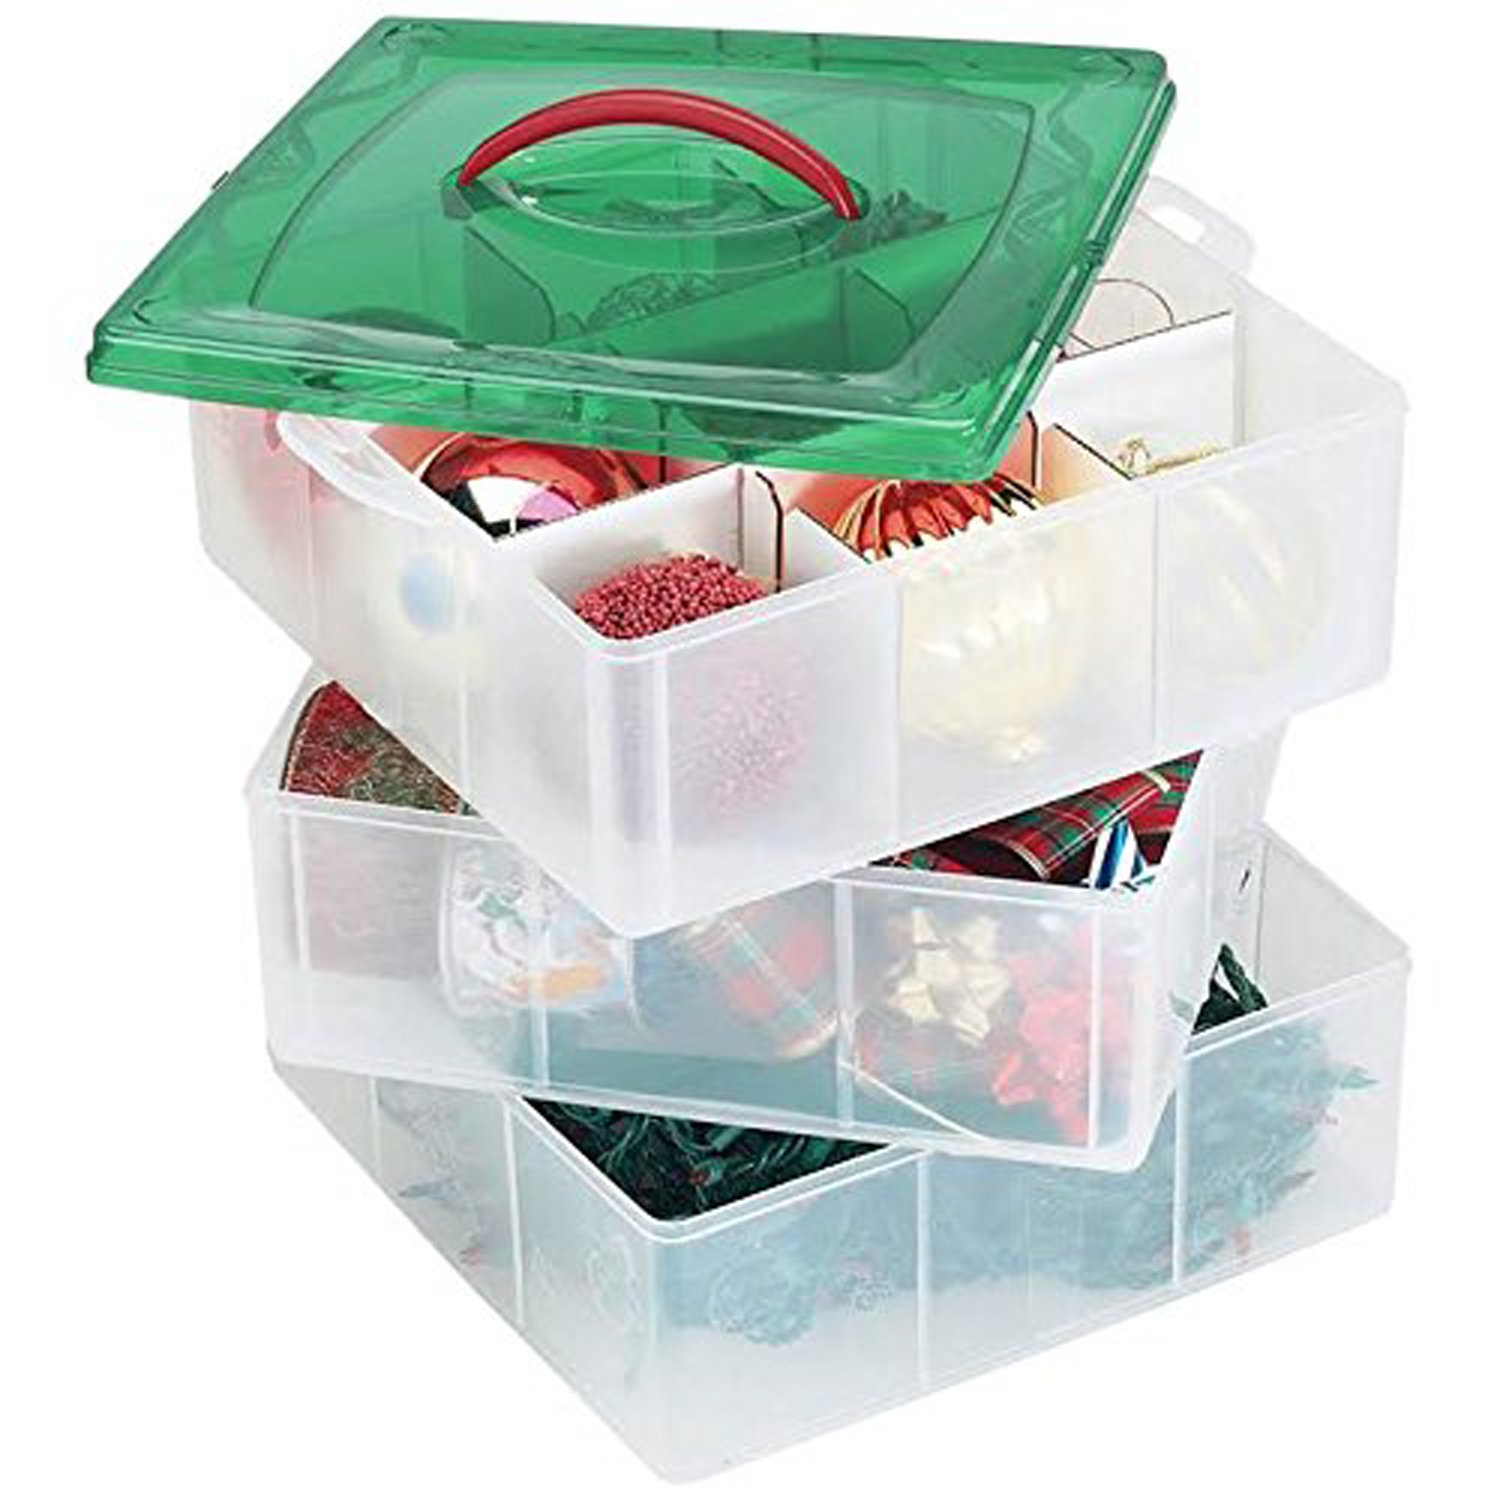 amazoncom christmas plastic ornament storage container 3 stackable snap together box trays bundled with ribbon container cloth home kitchen - Christmas Decoration Storage Containers